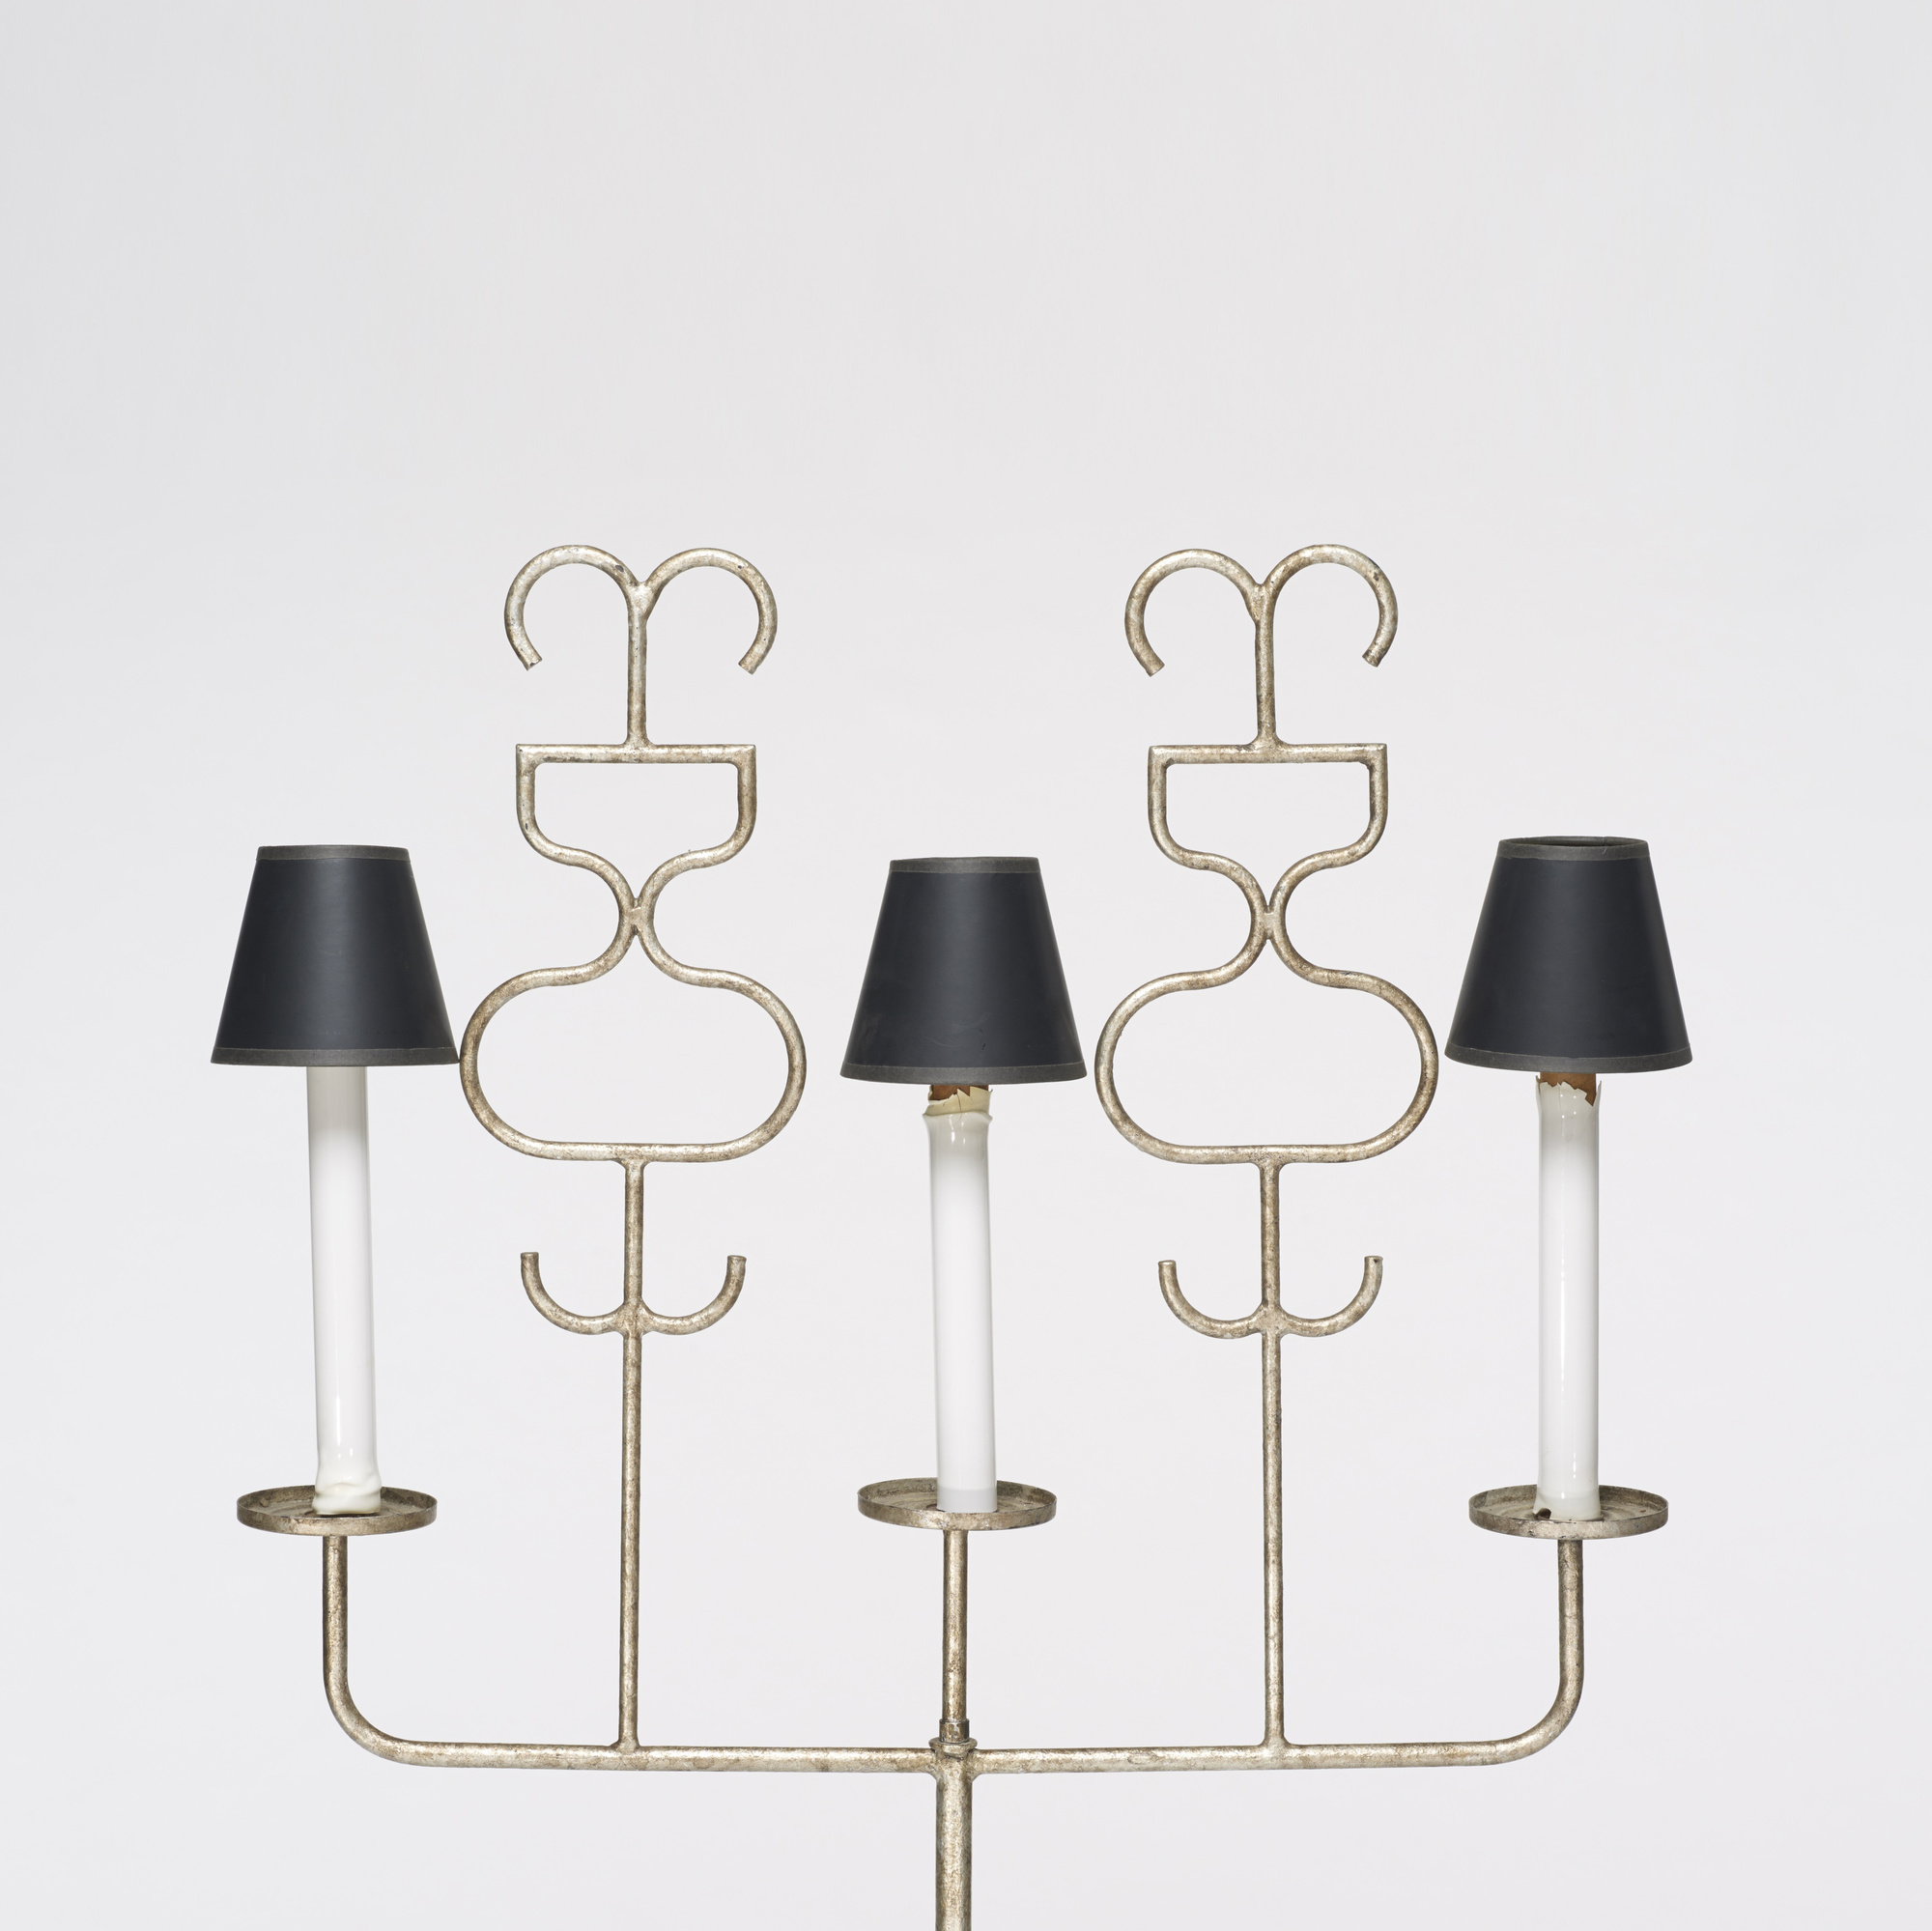 394: Tommi Parzinger / floor lamp (2 of 2)